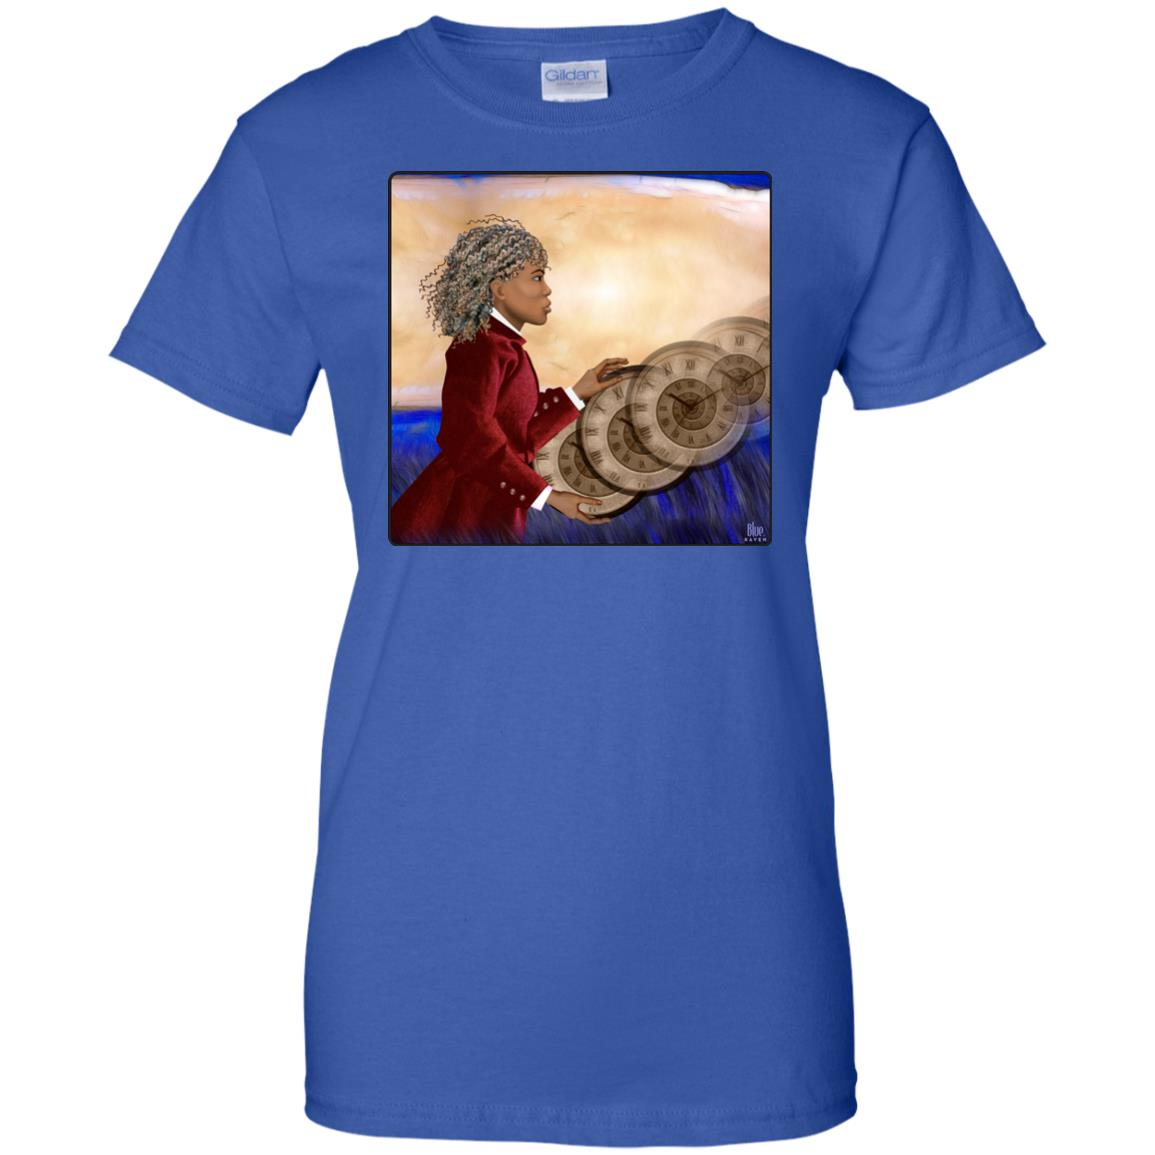 RUSHING TIME - Women's Relaxed Fit T-Shirt